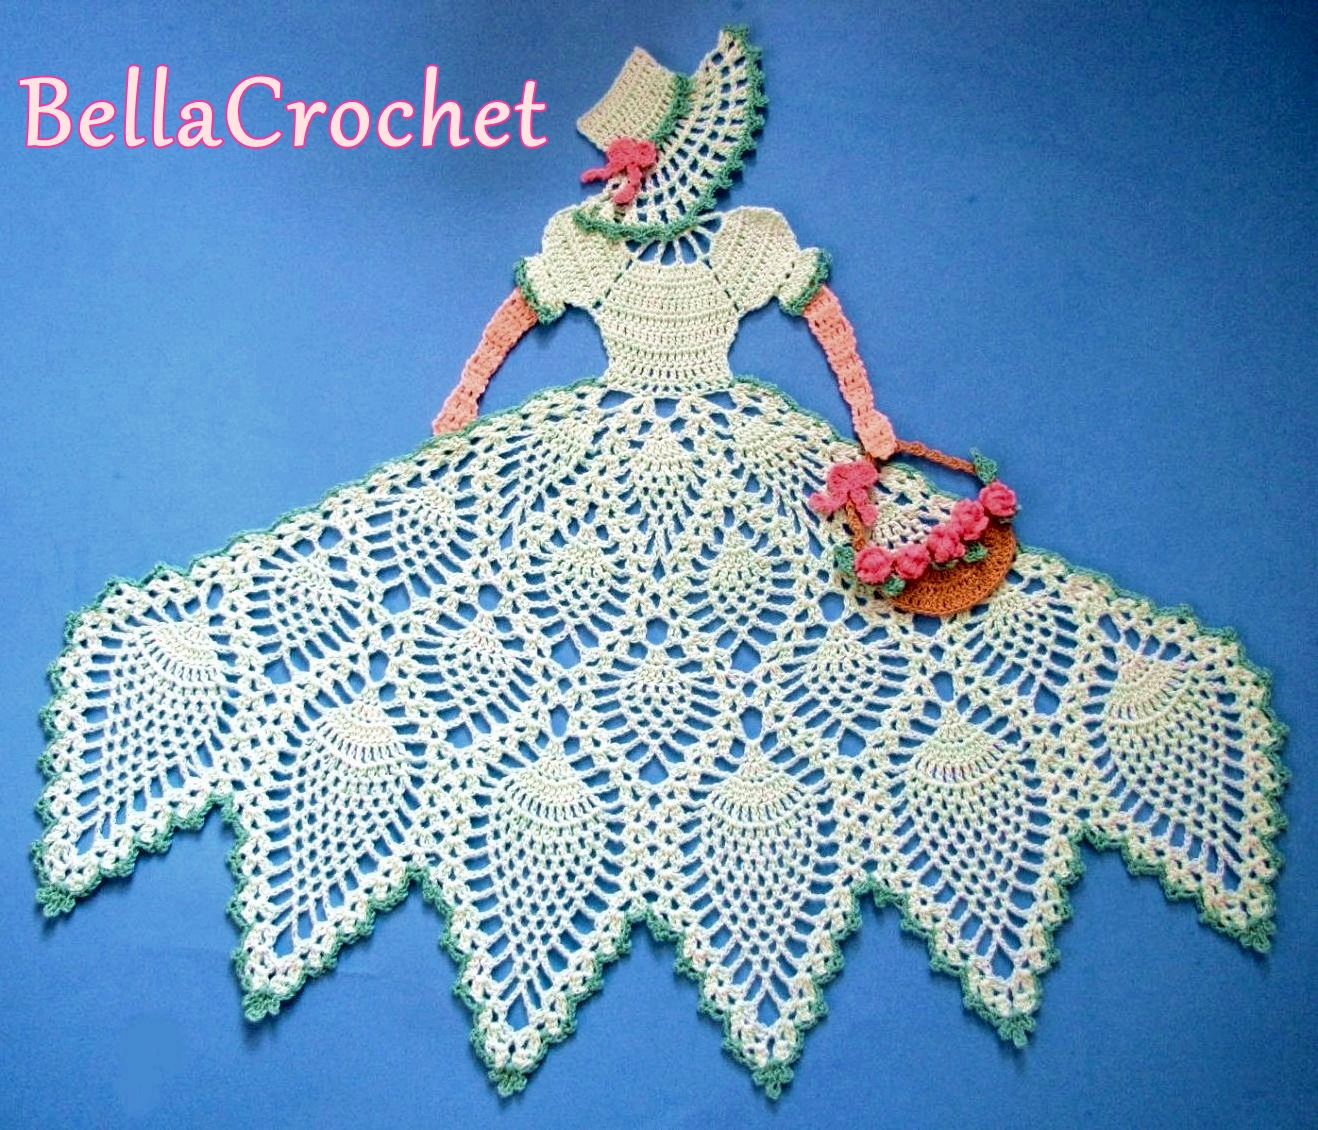 Bellacrochet sweet southern belle a free crochet pattern for you skill level experienced for those who are adept at working with size 10 thread and steel hooks and who have an advanced knowledge of crochet bankloansurffo Image collections